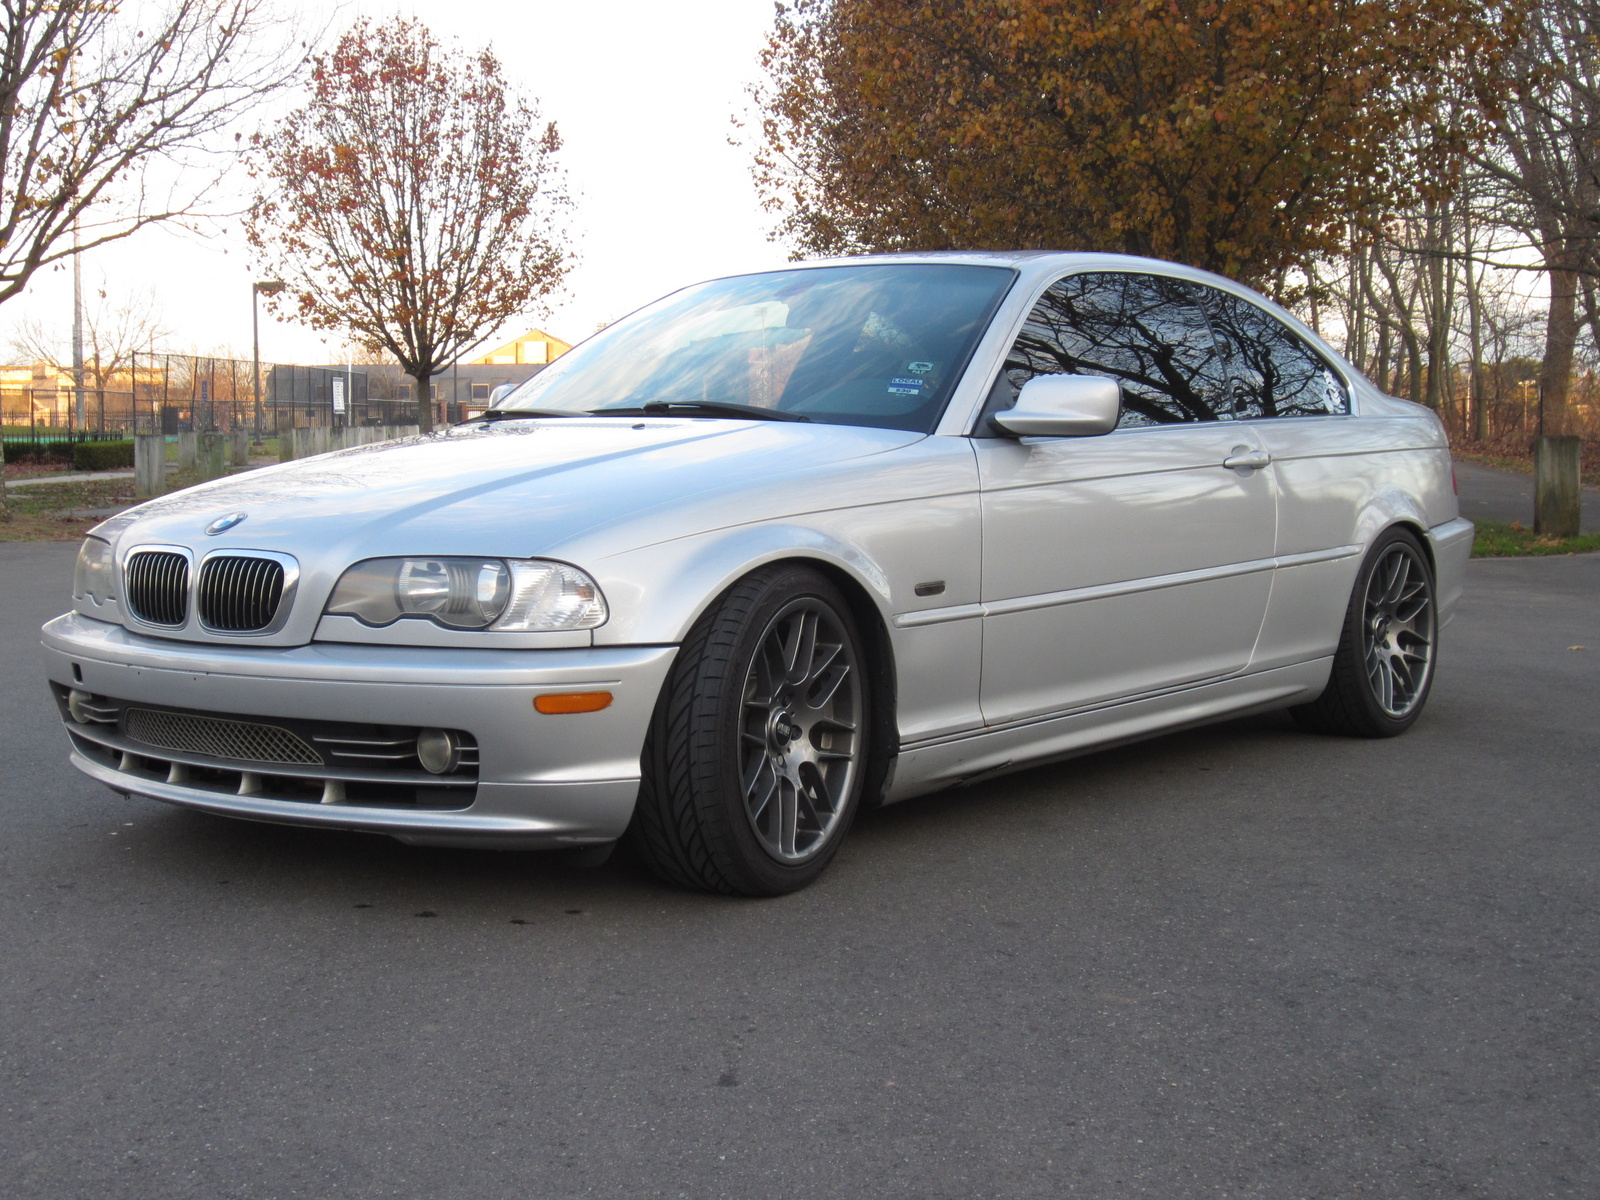 BMW 3 series 330Ci 2001 photo - 11